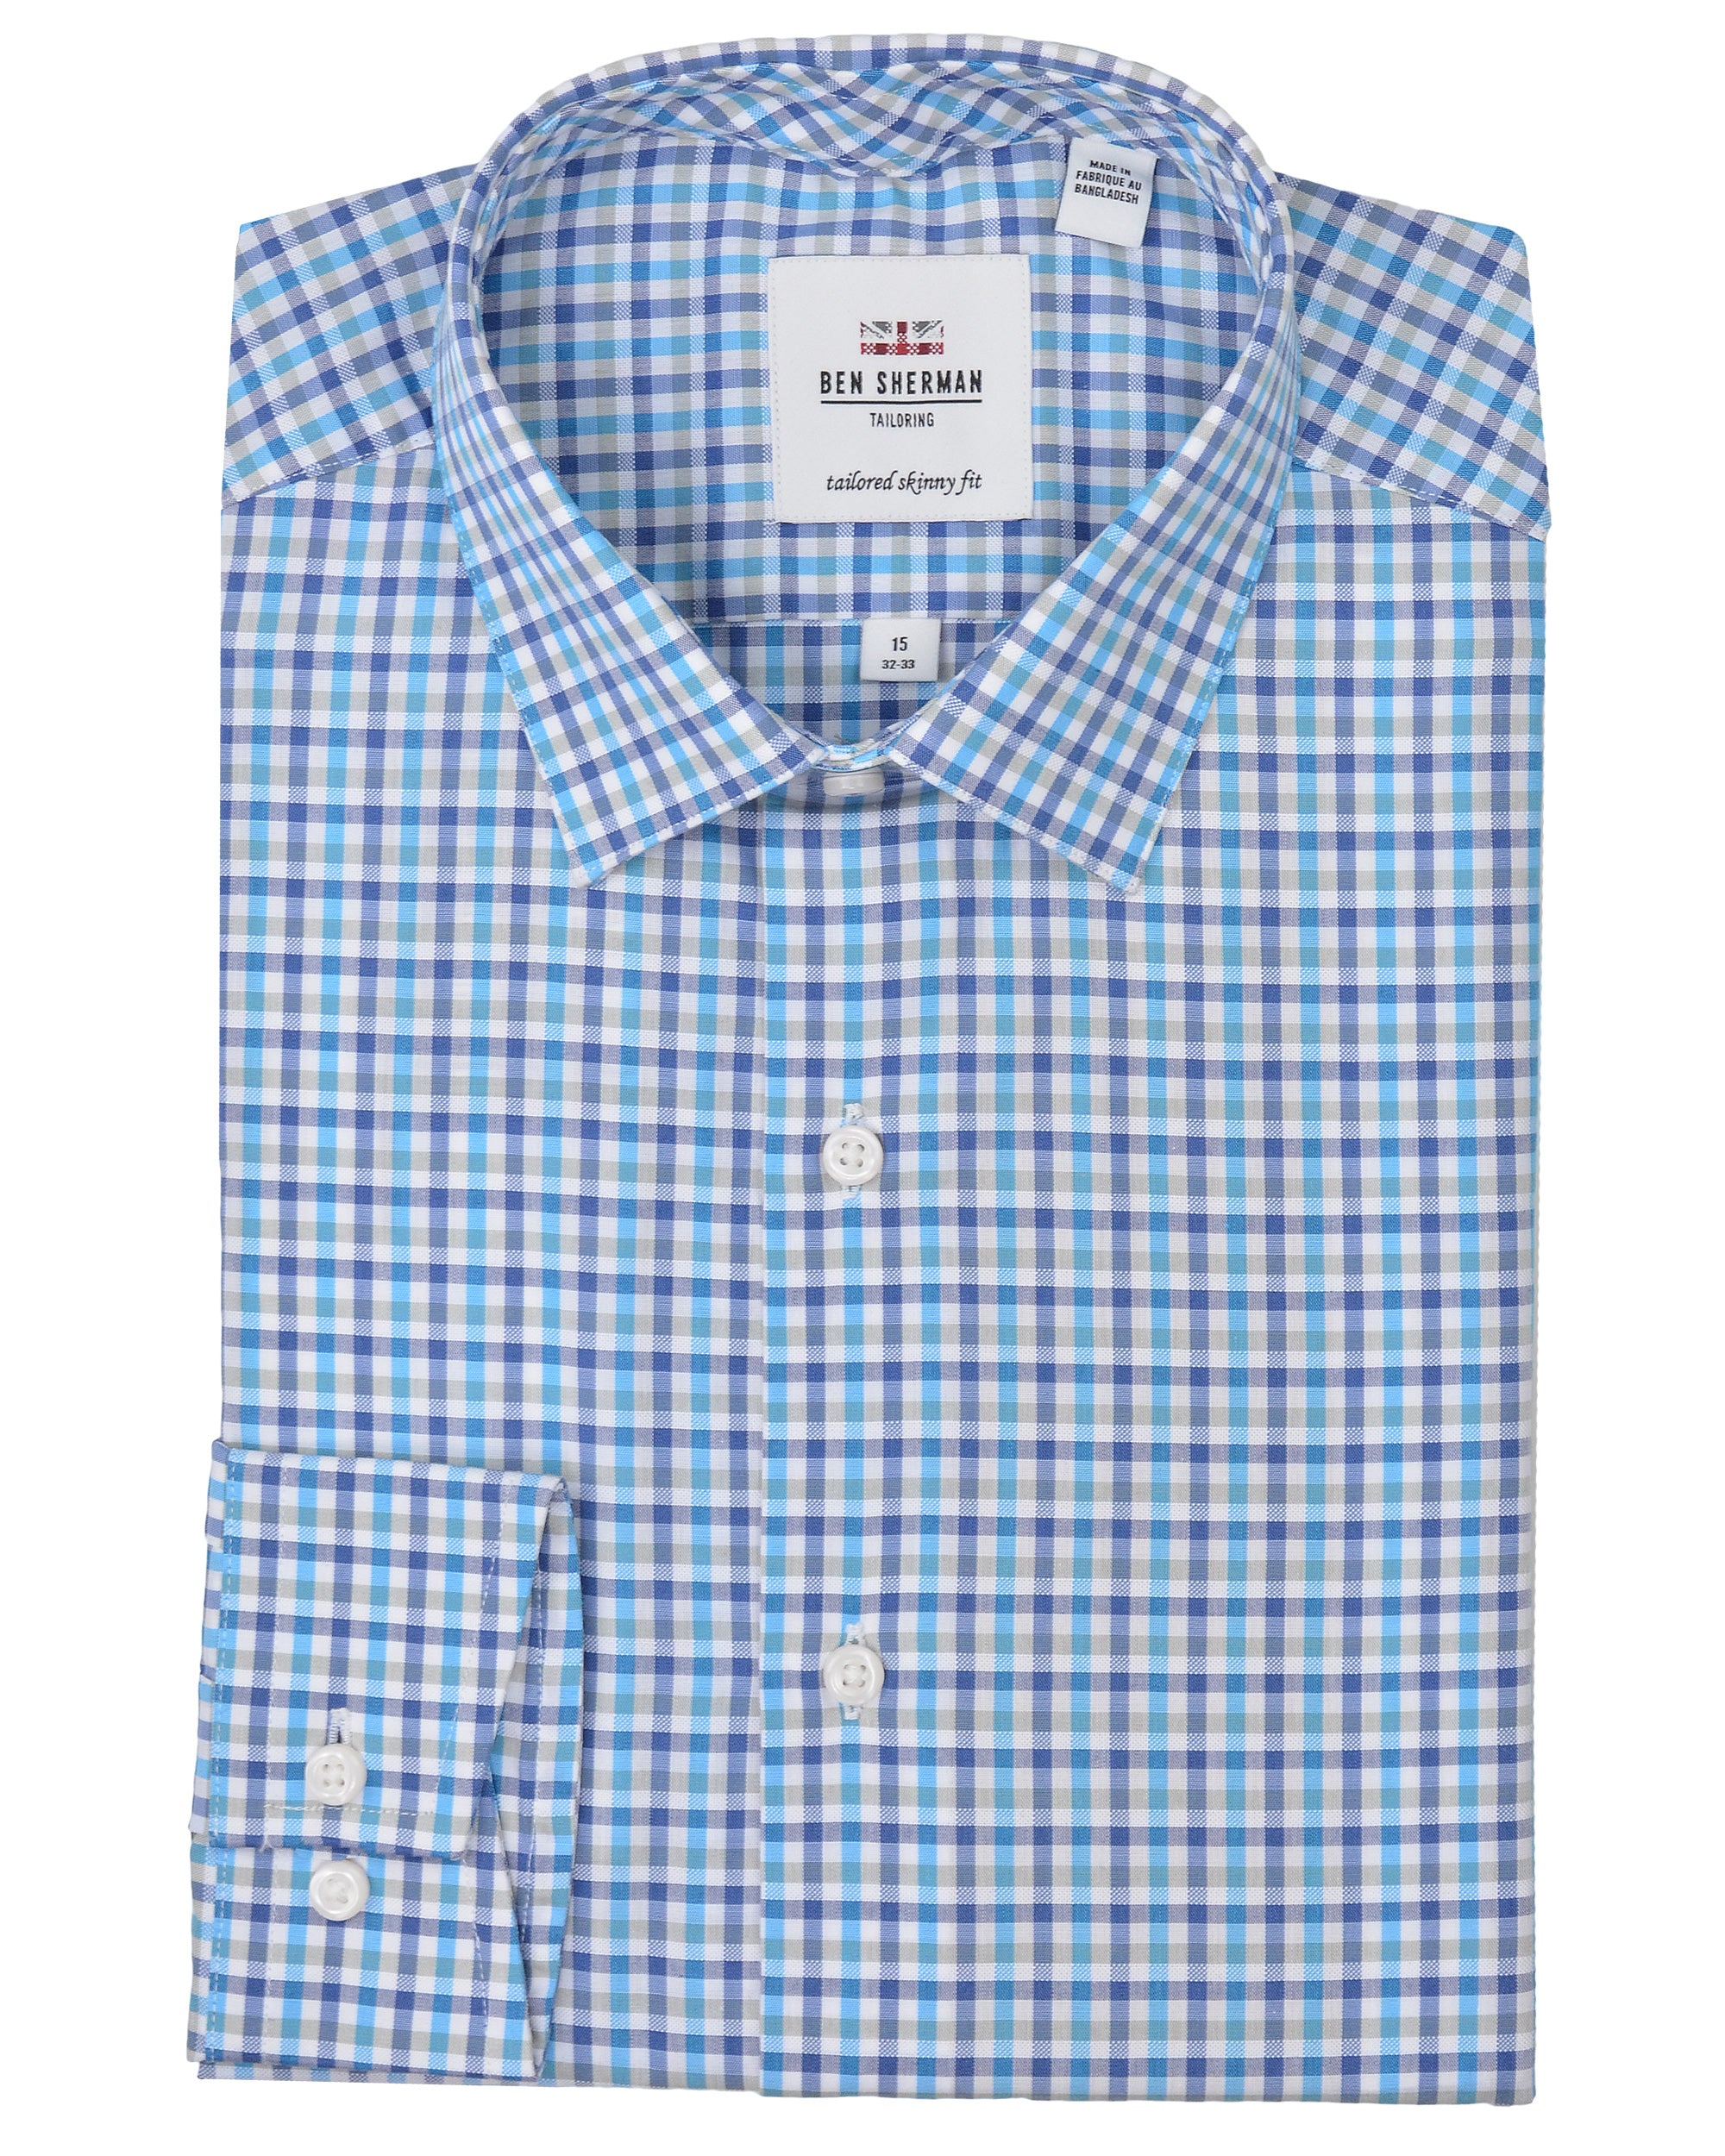 Multi Dobby Tattersall Skinny Fit Dress Shirt